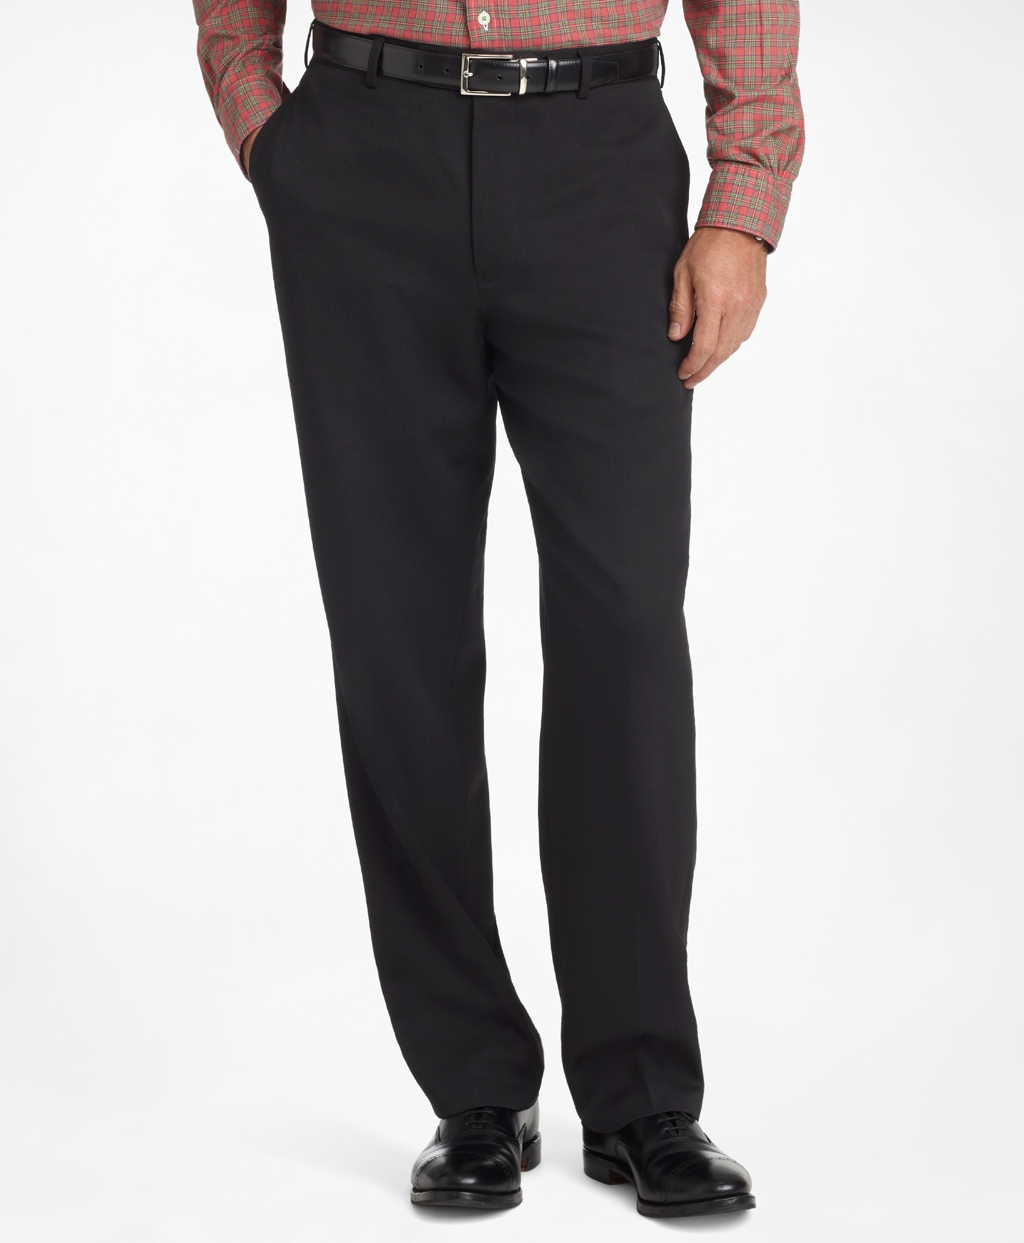 Product Features Flat-front straight-leg pant with fixed front waistband and elasticized back.